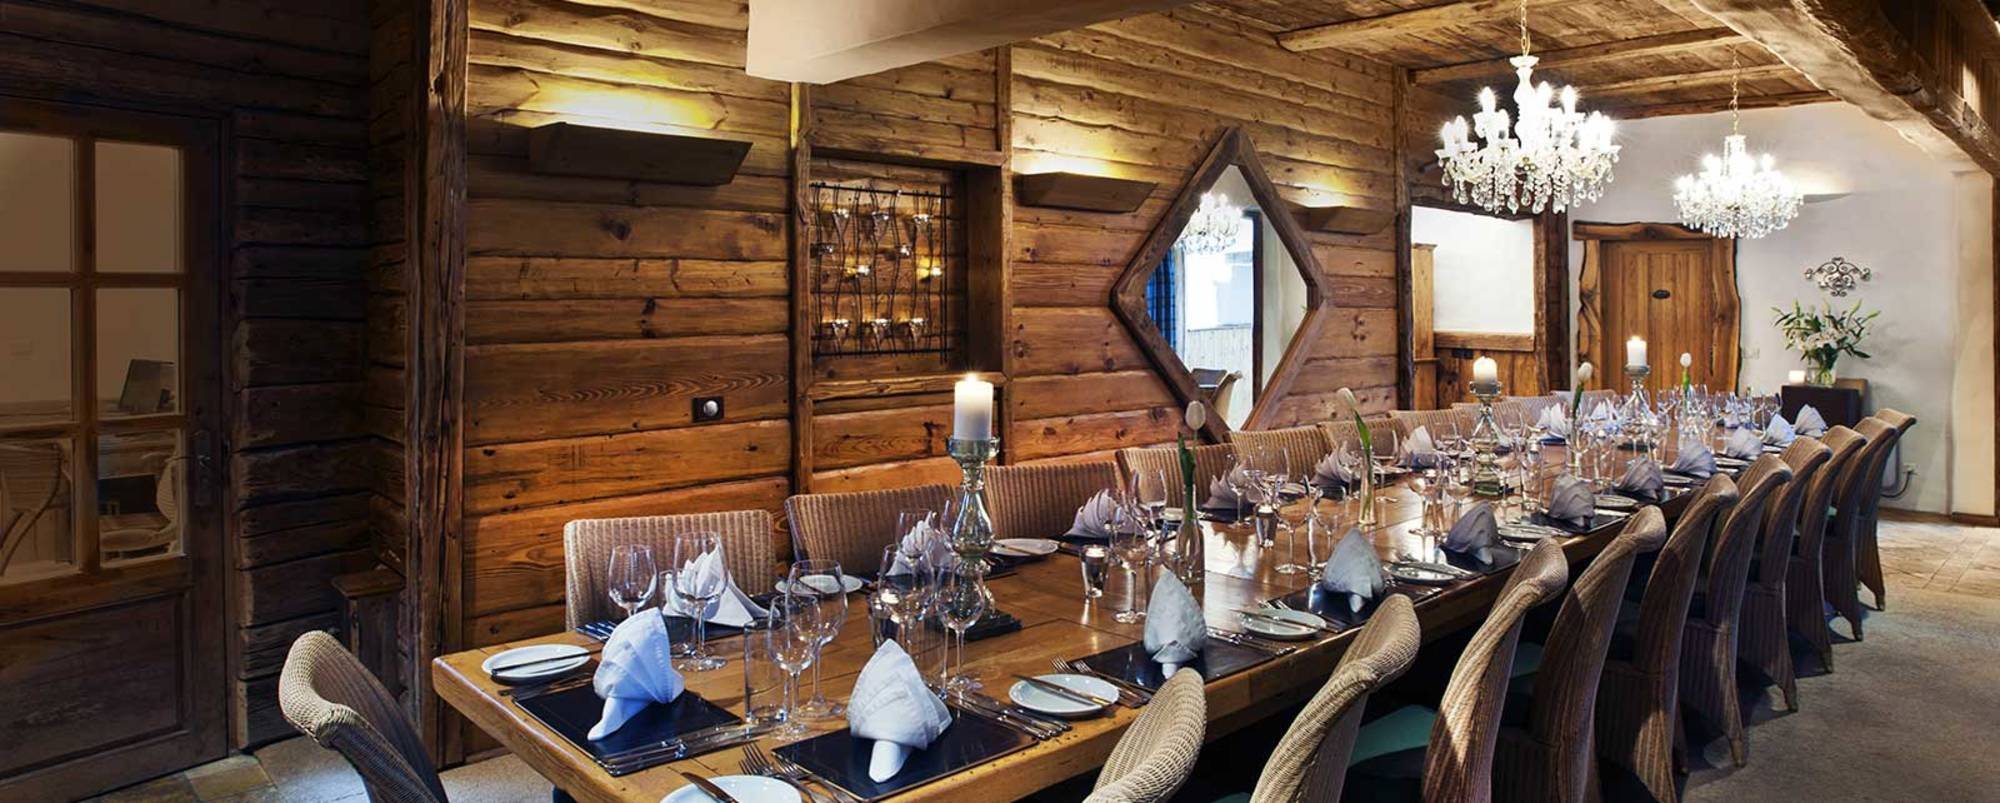 Dining table at Le Chardon - large luxury chalet